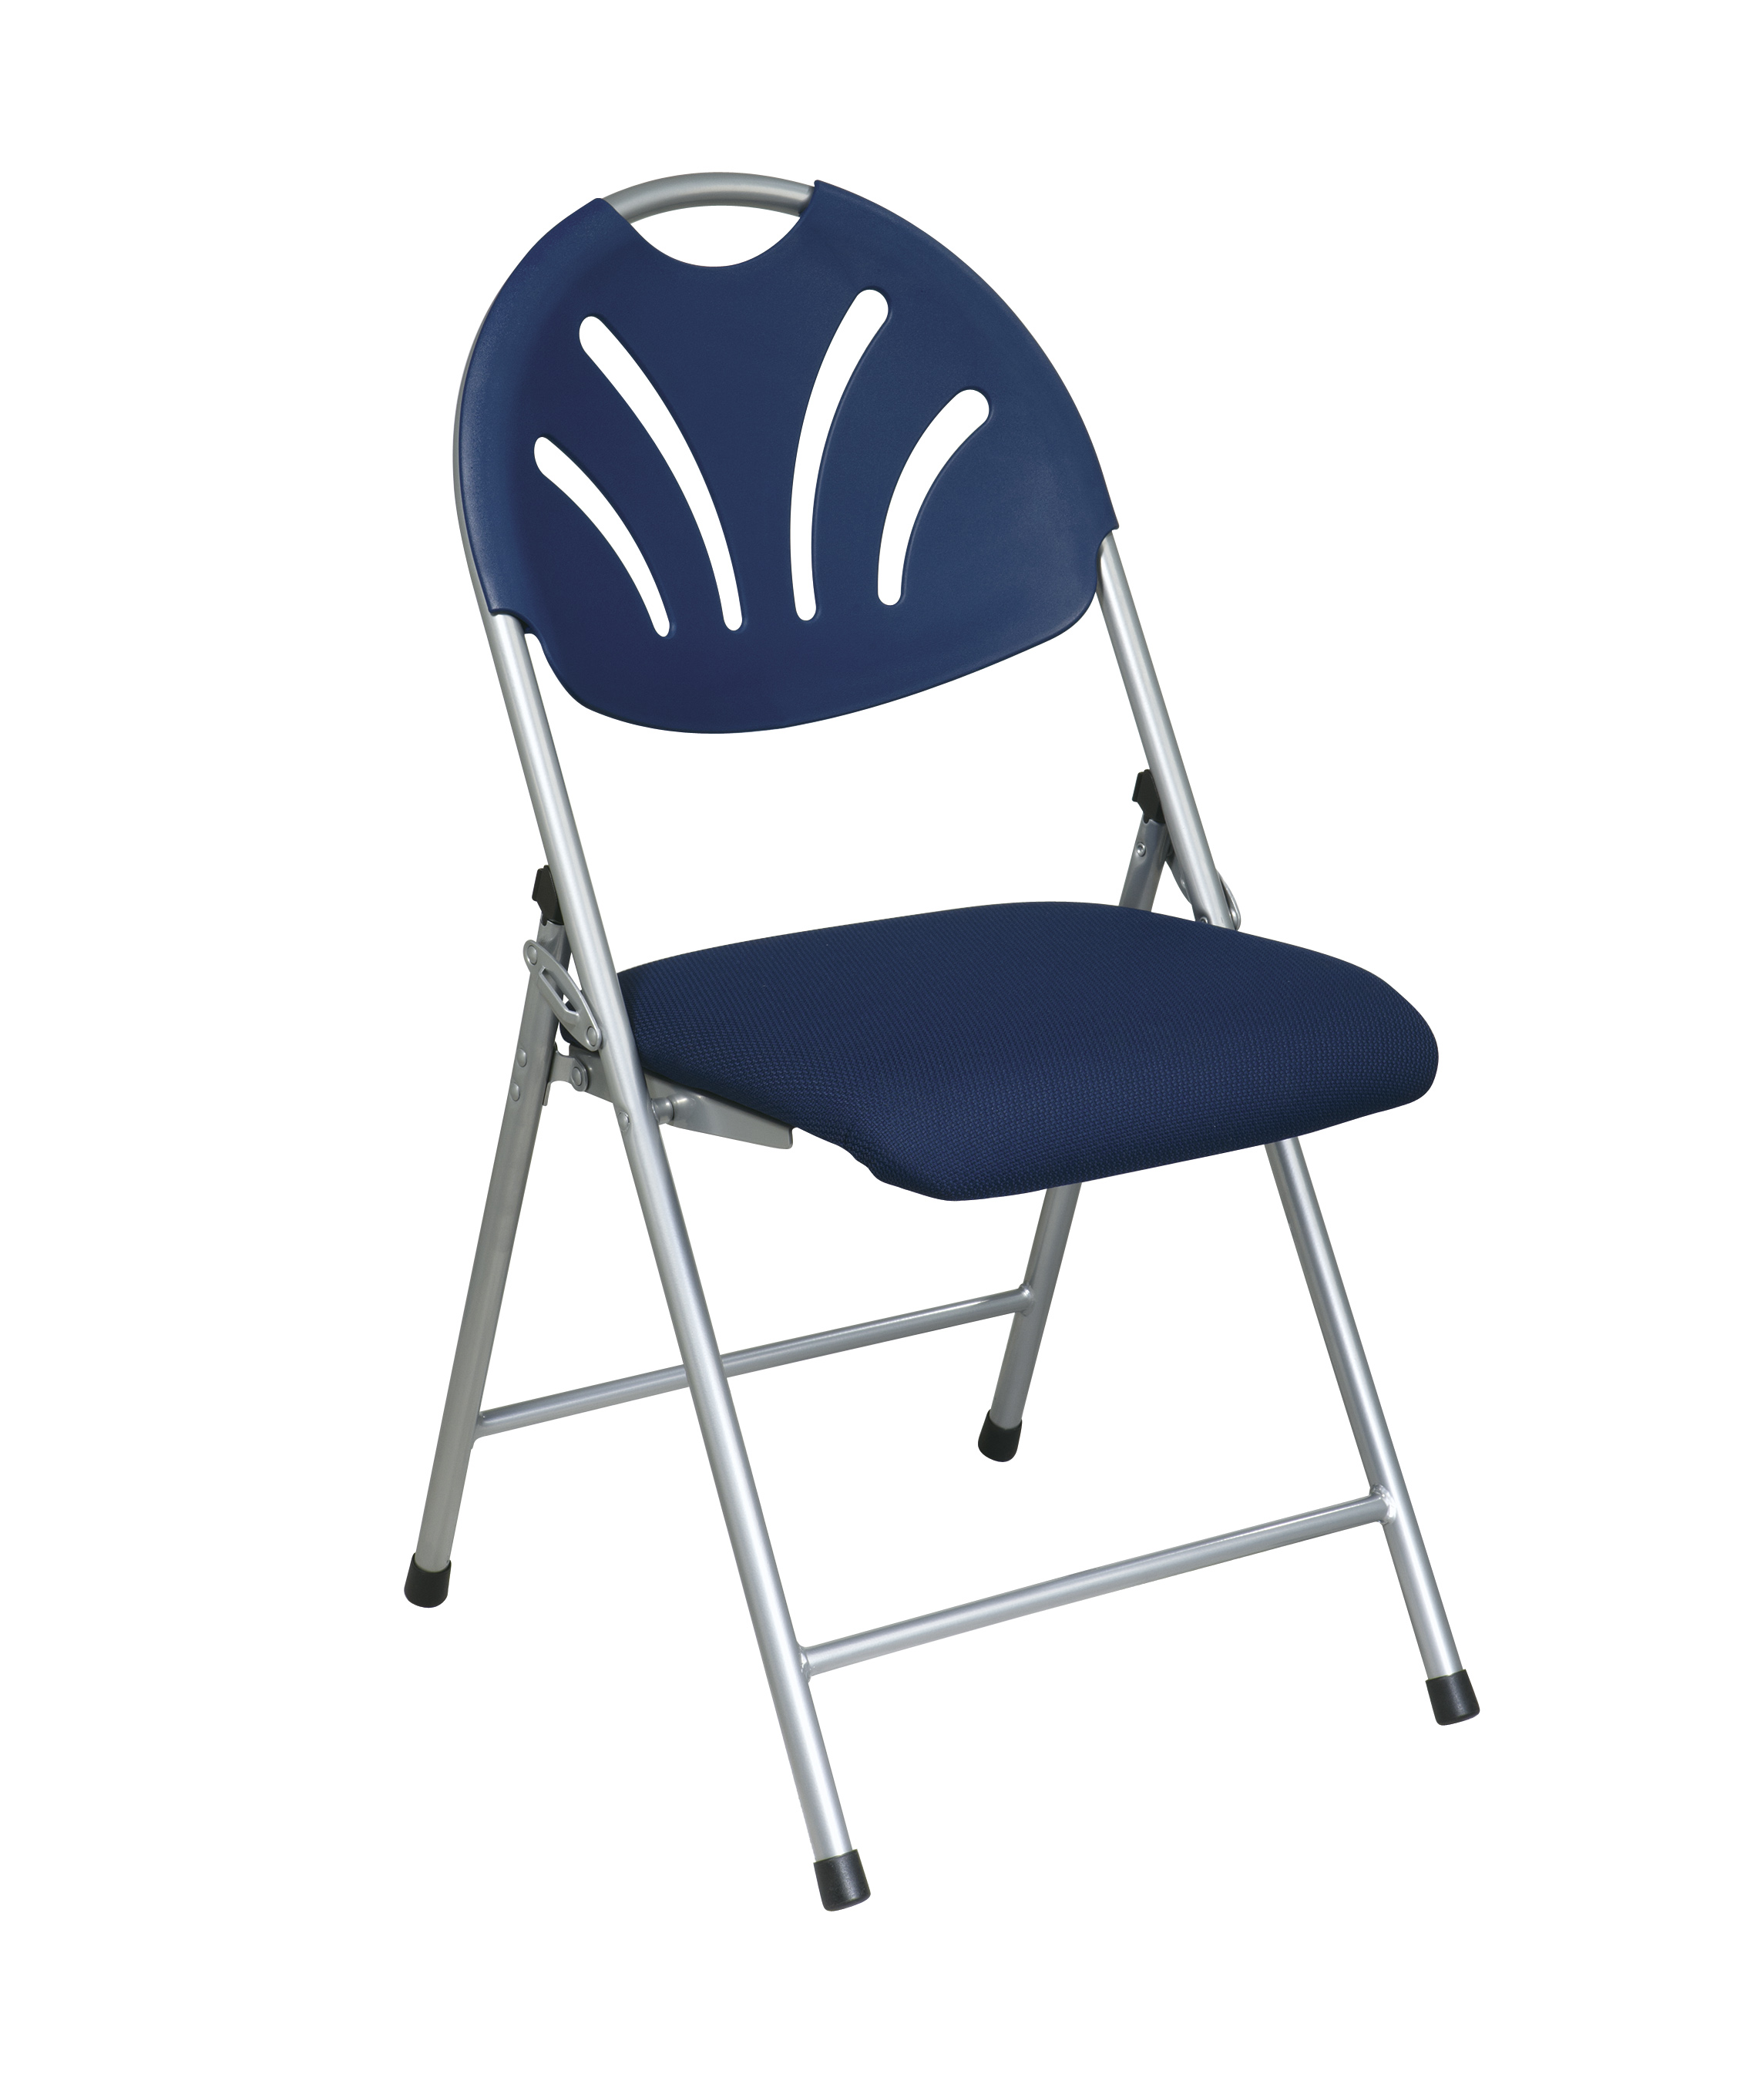 folding fabric chairs best value computer chair office star with seat by oj commerce